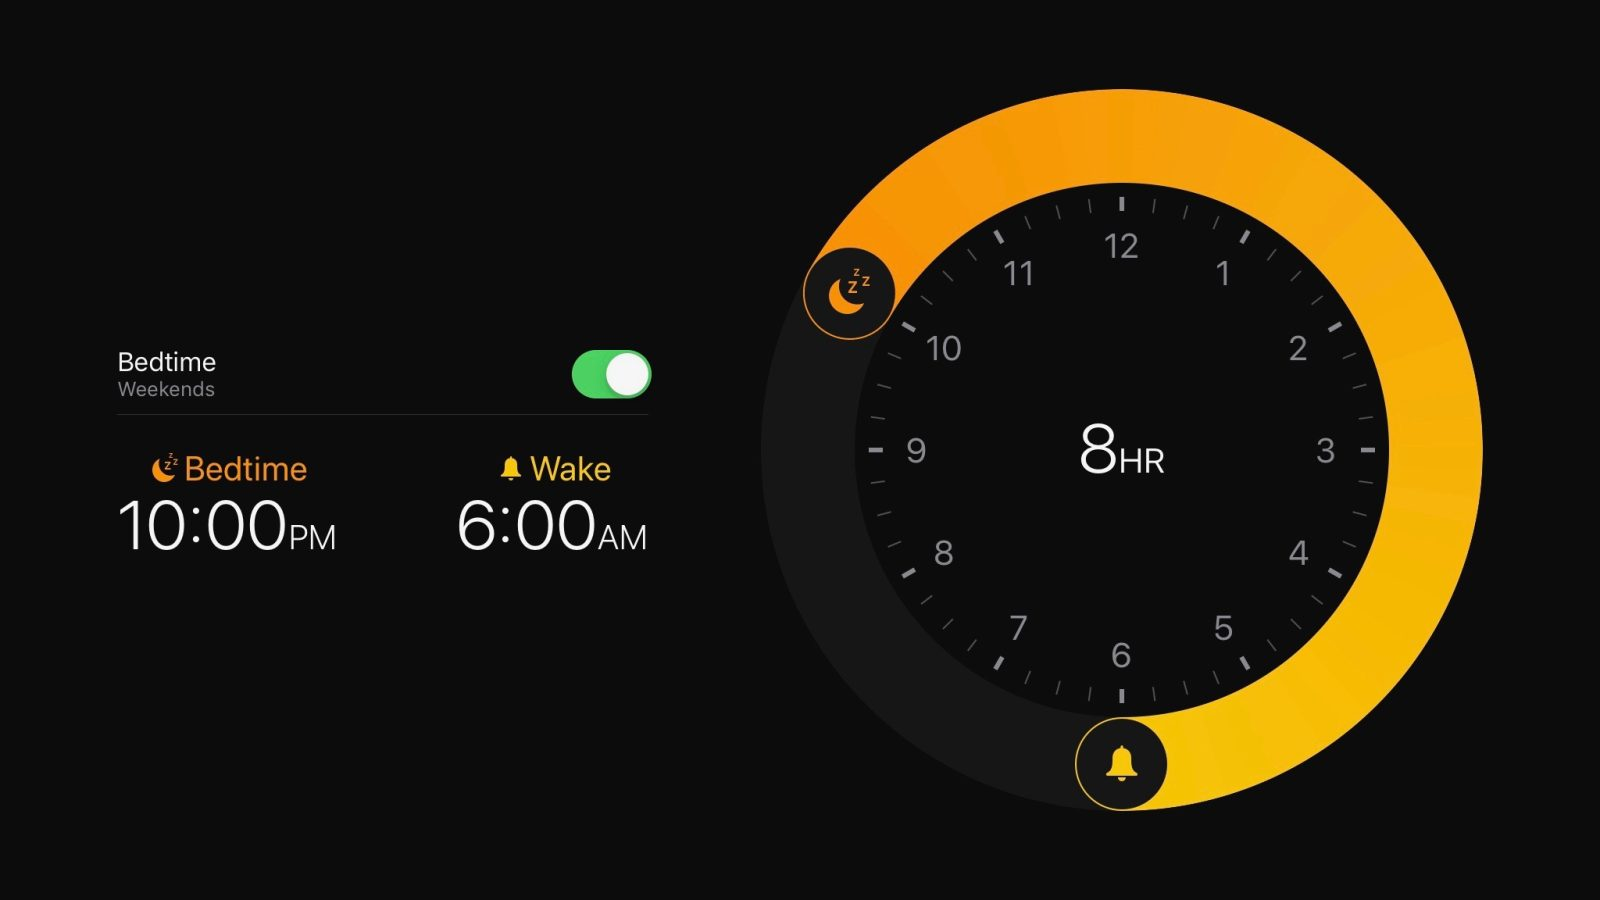 iPhone & iPad: How to setup Bedtime on iOS and get more